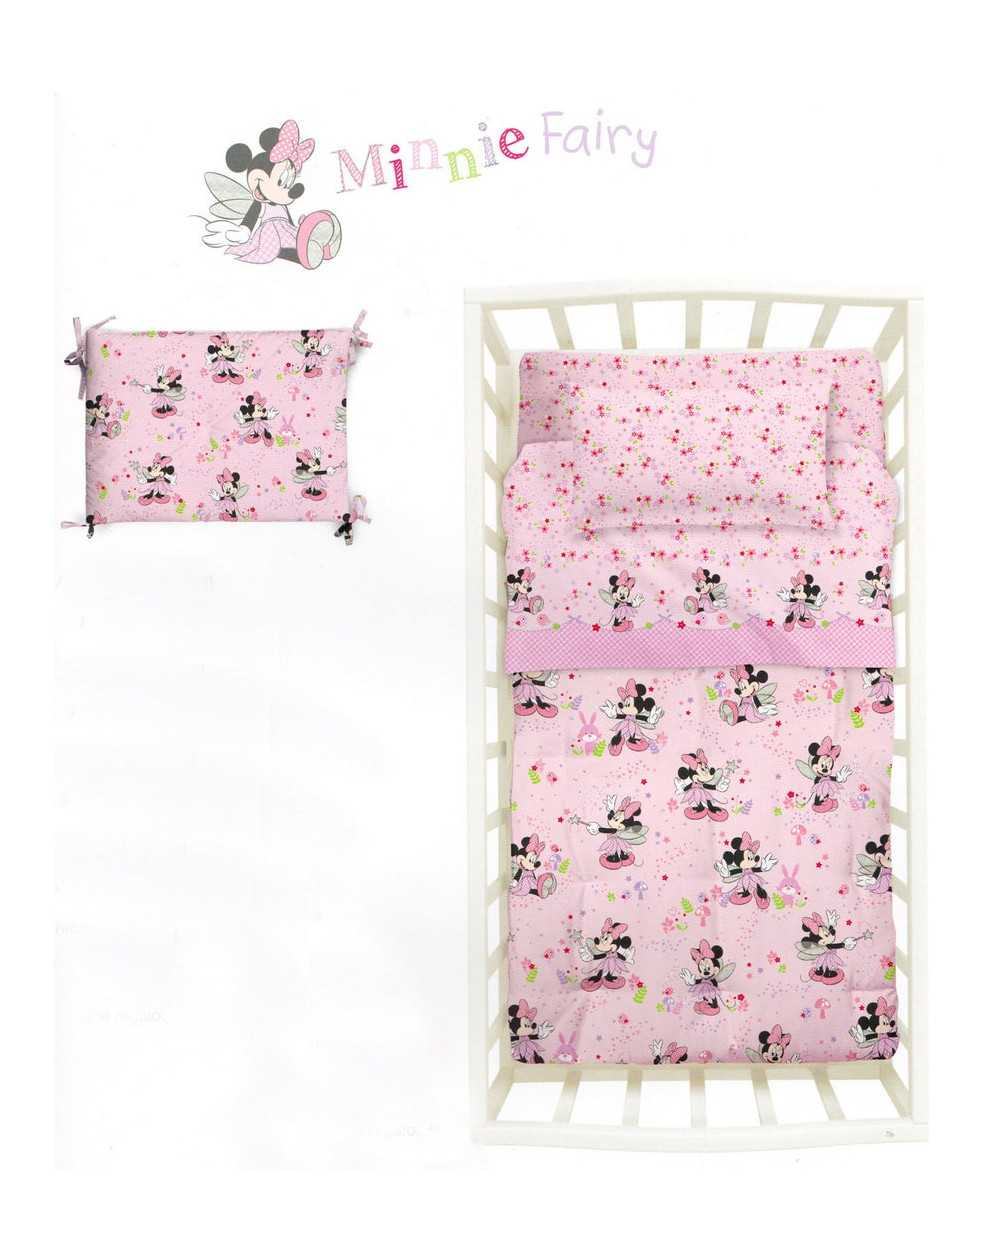 tour de lit edredon minnie fairy baby disney rasoline l f d home. Black Bedroom Furniture Sets. Home Design Ideas